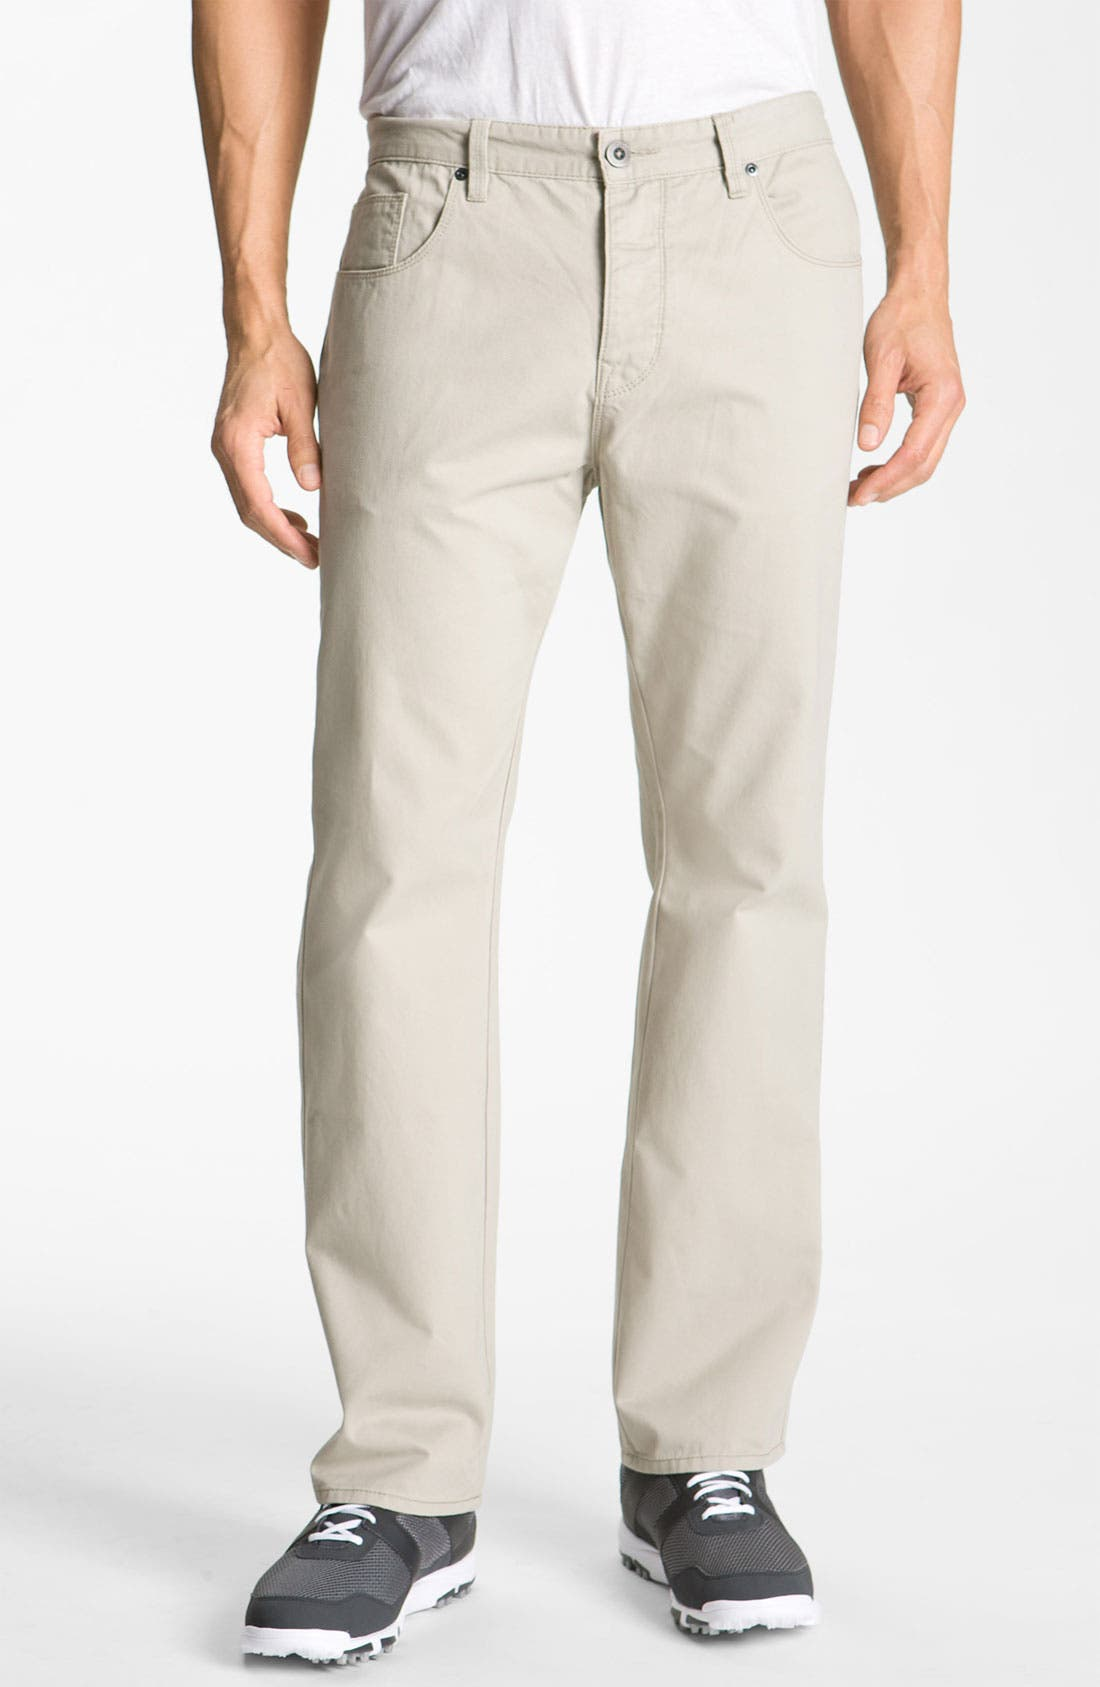 Alternate Image 1 Selected - Cutter & Buck 'Pike' Five-Pocket Pants (Big & Tall)